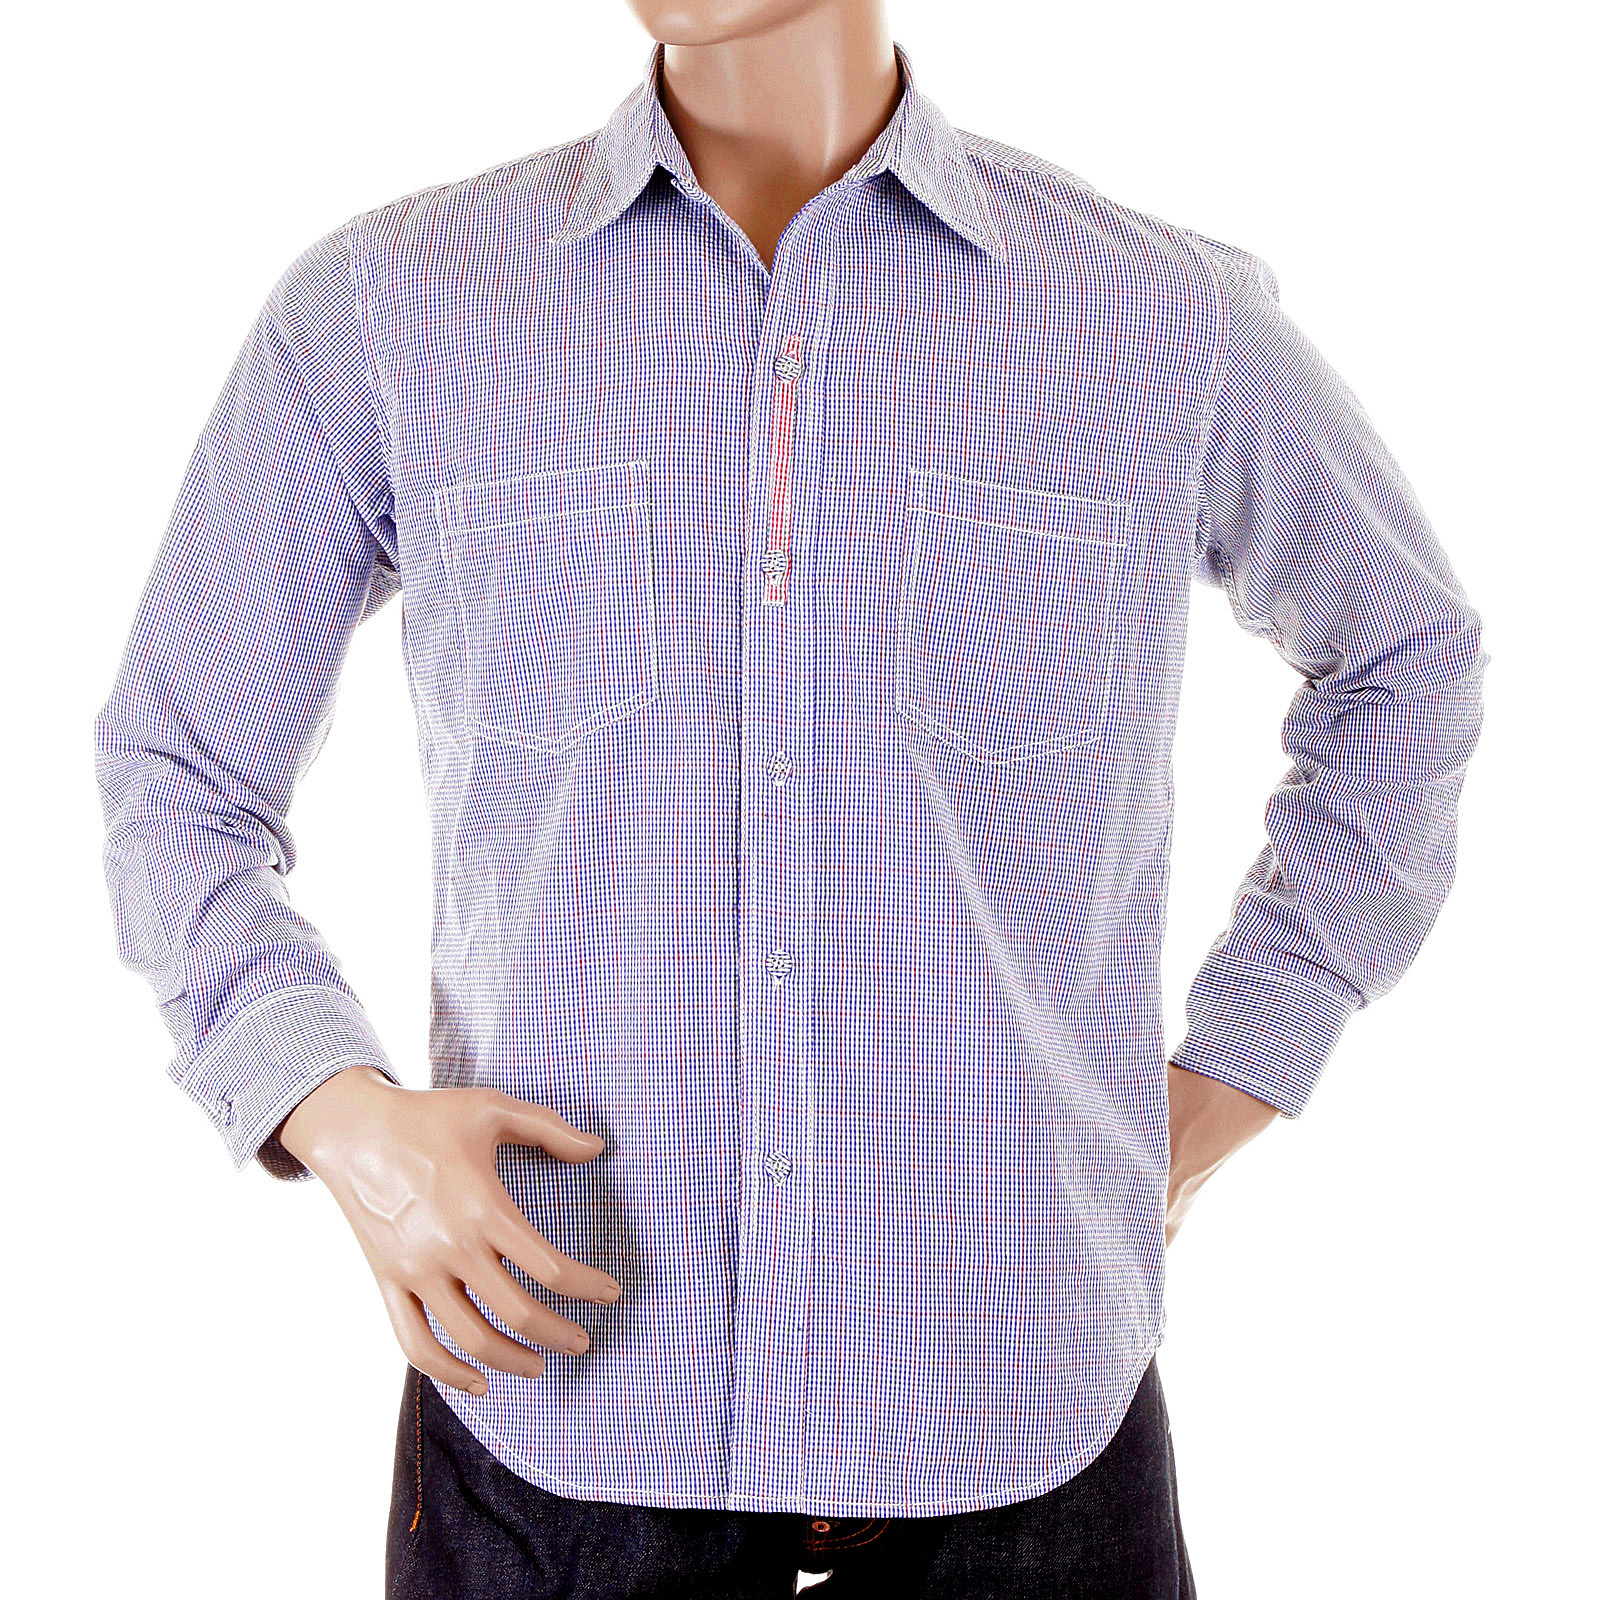 Yoropiko Blue Checked Shirt To Be Office Ready In Style